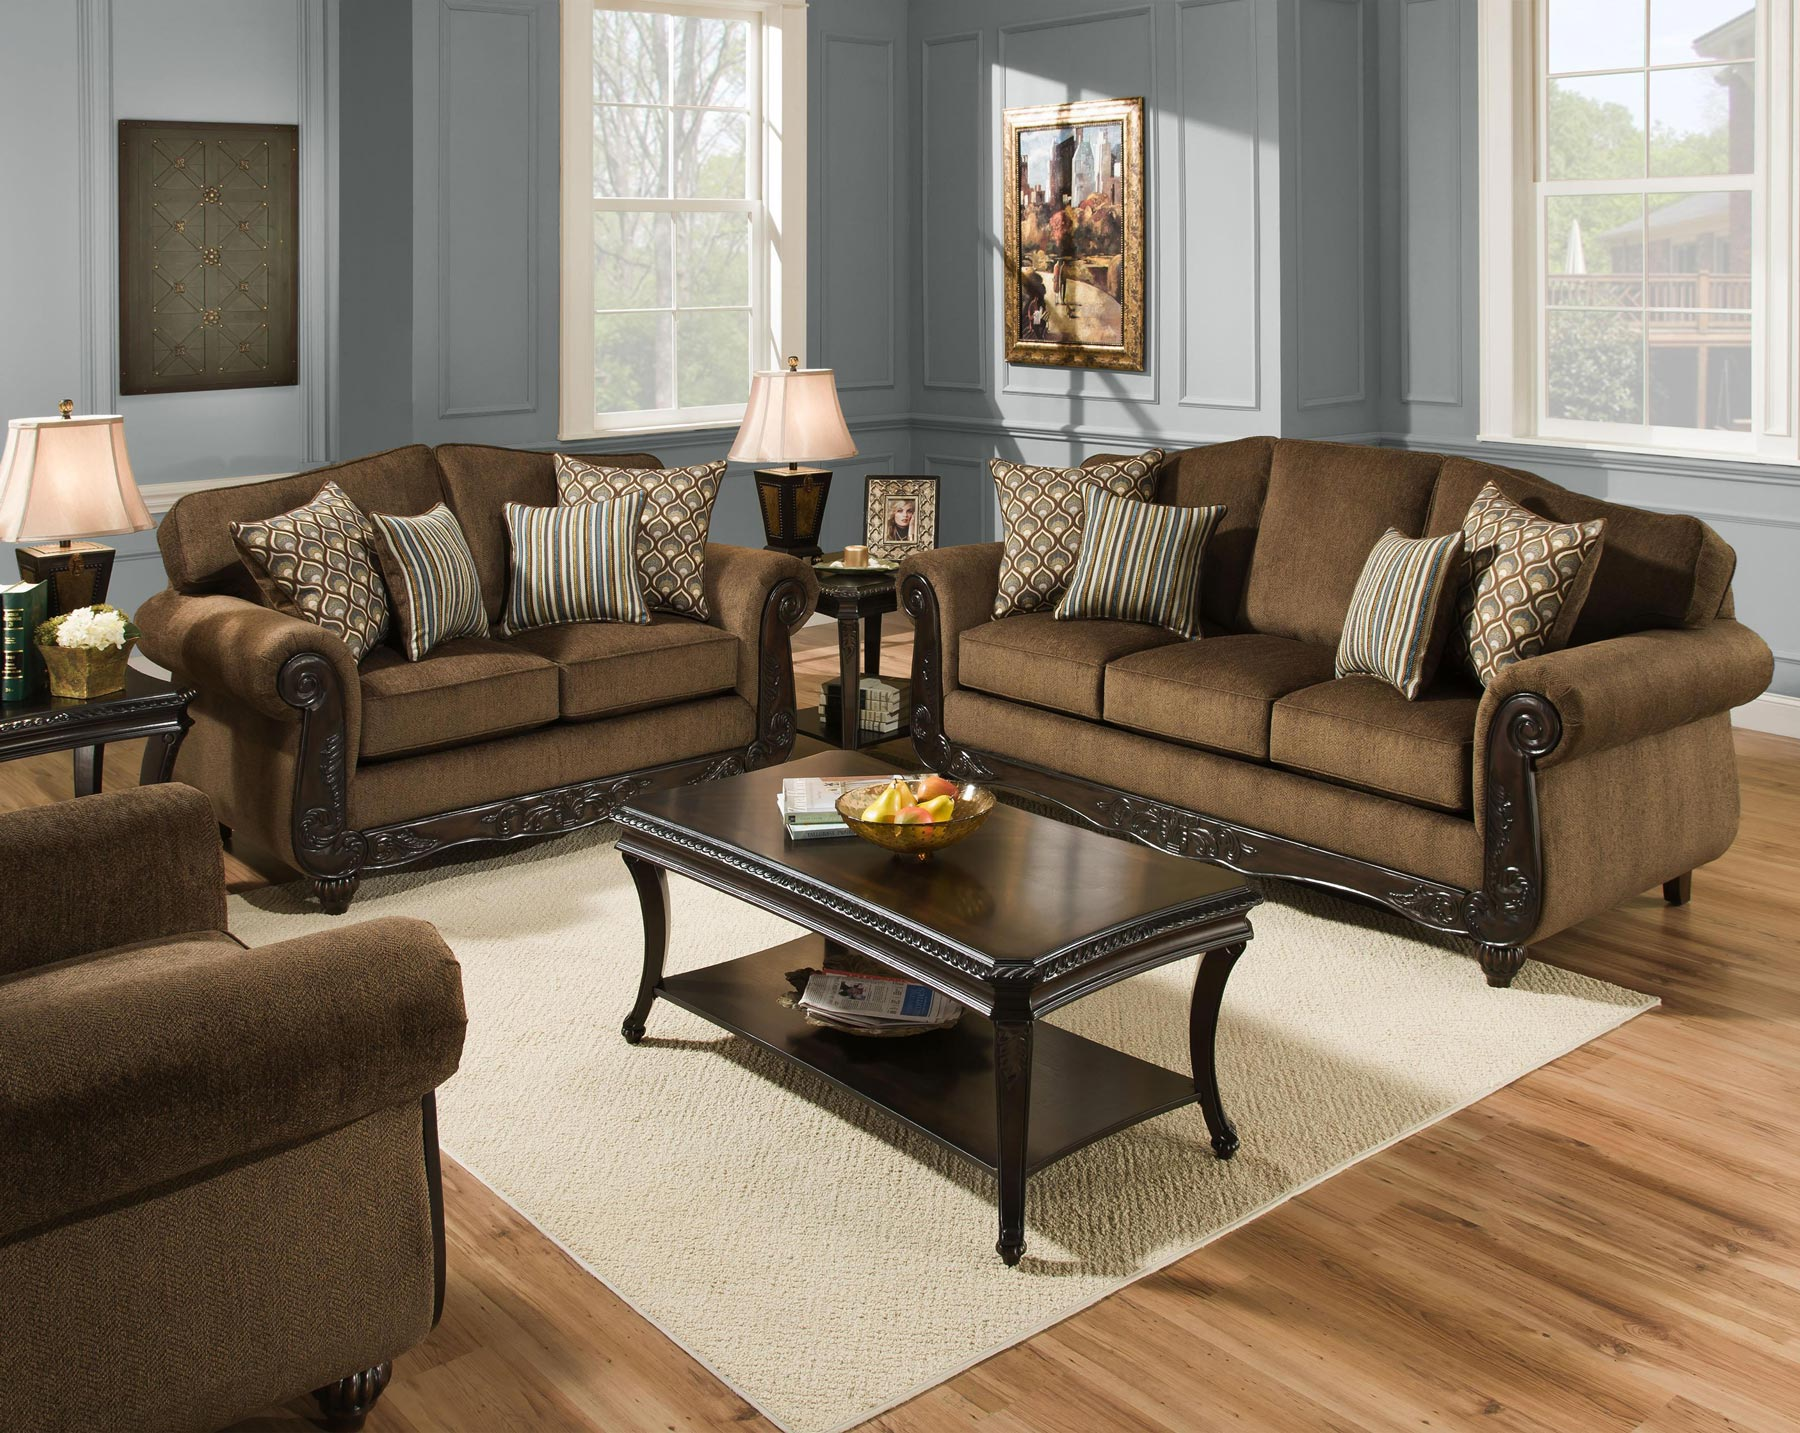 Bedford bark 3 piece living room set gonzalez furniture for 3 piece living room furniture